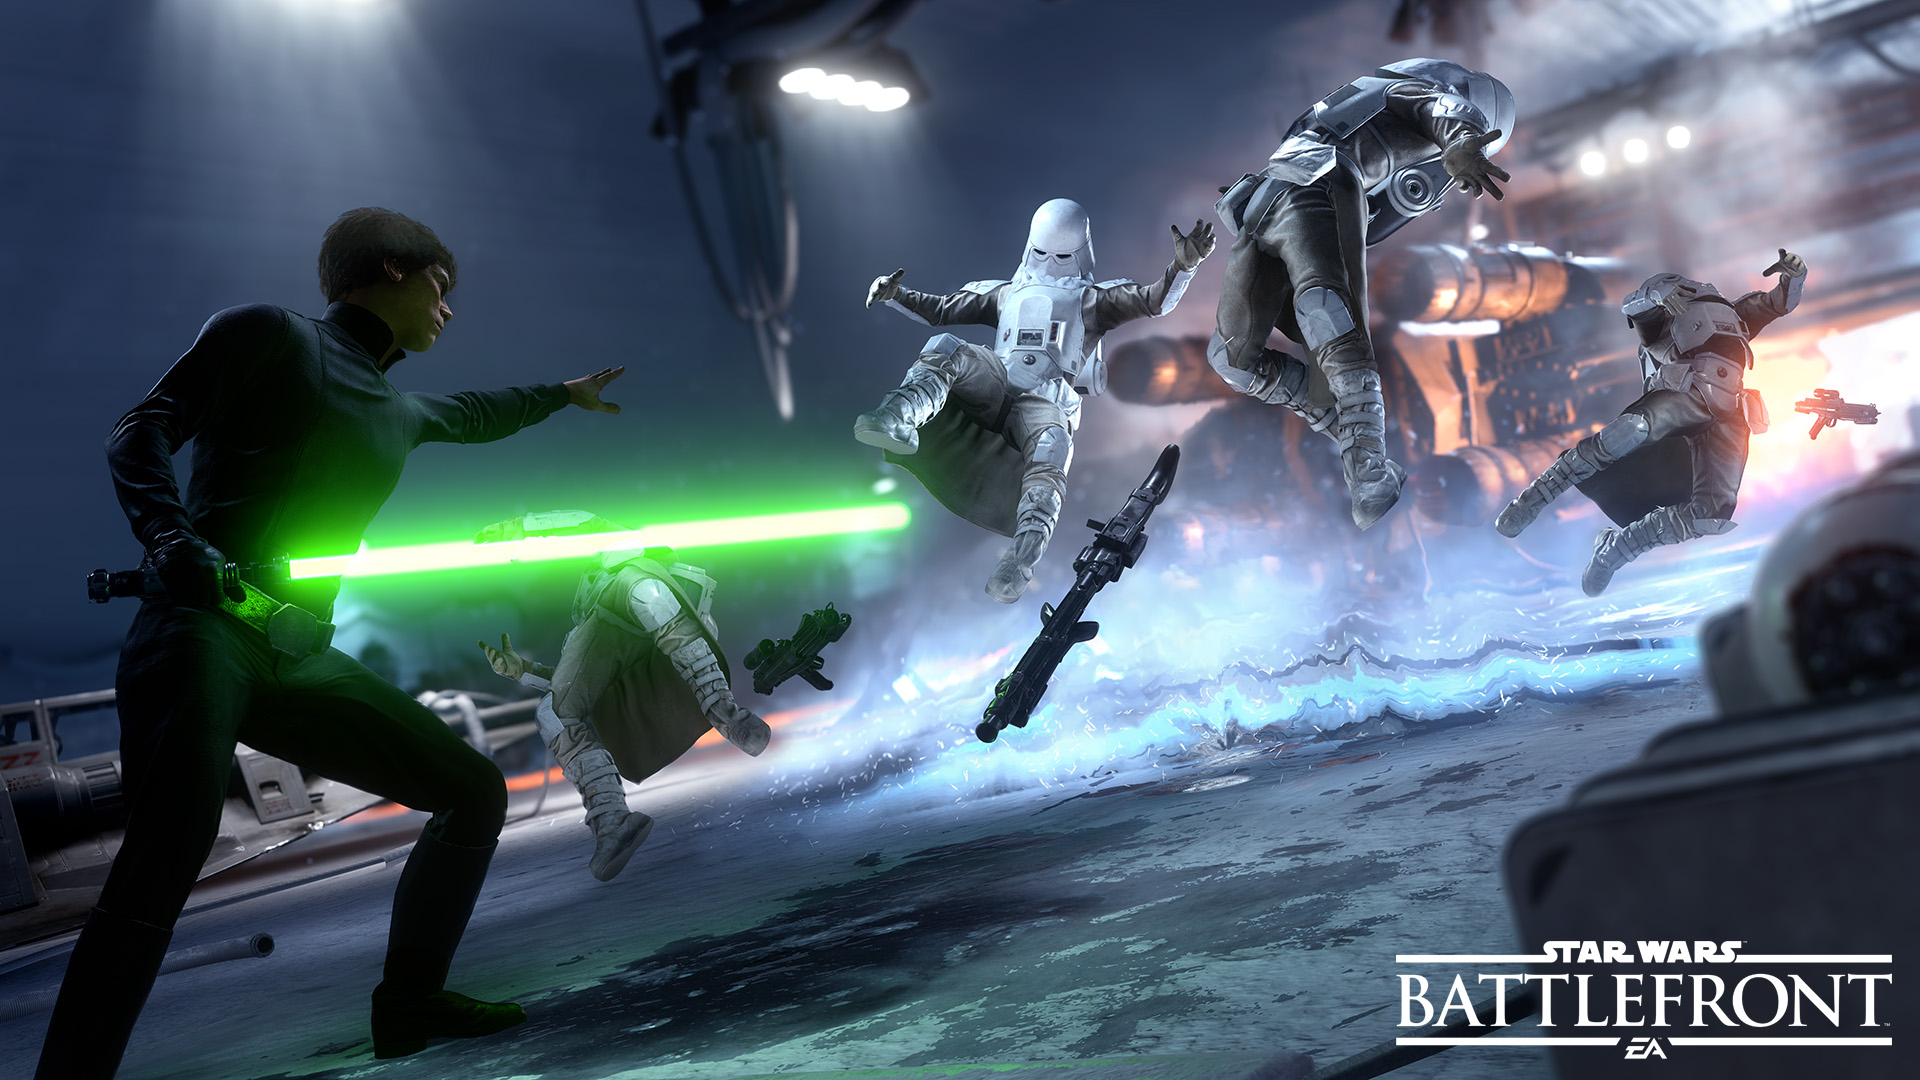 ps4 review: star wars: battlefront | video games reloaded